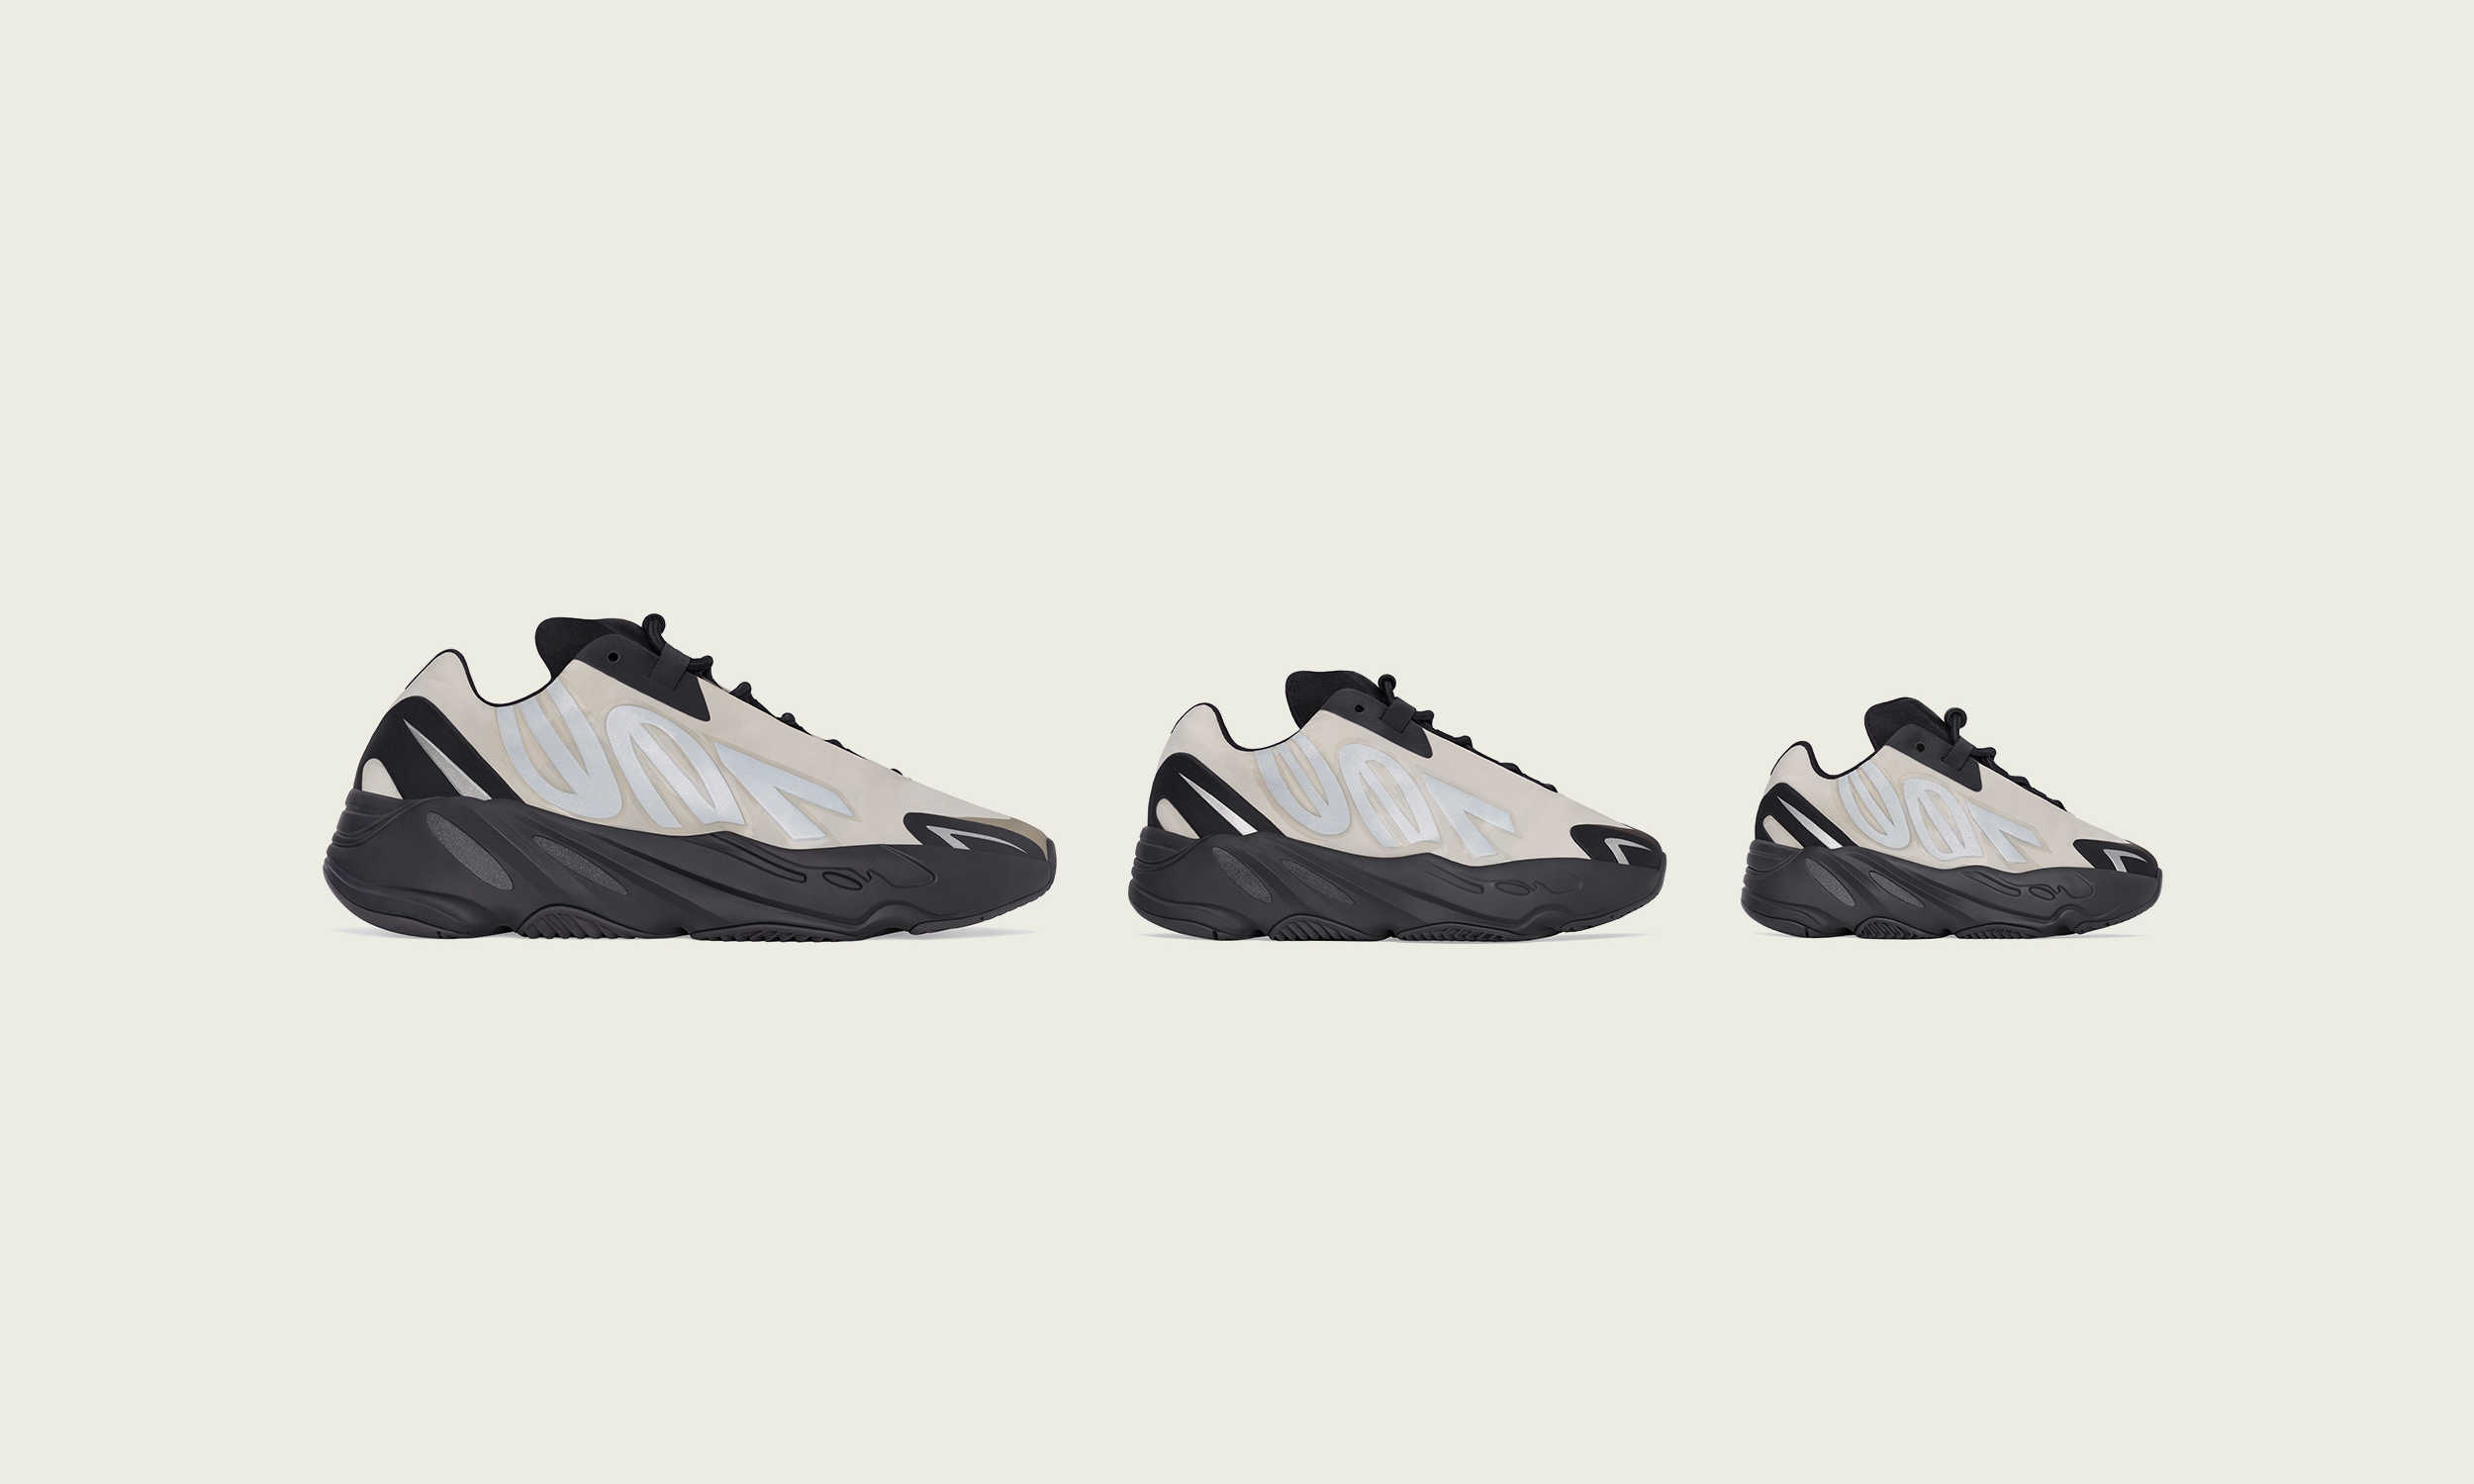 YEEZY BOOST 700 MNVN BONE 鞋款即将发售